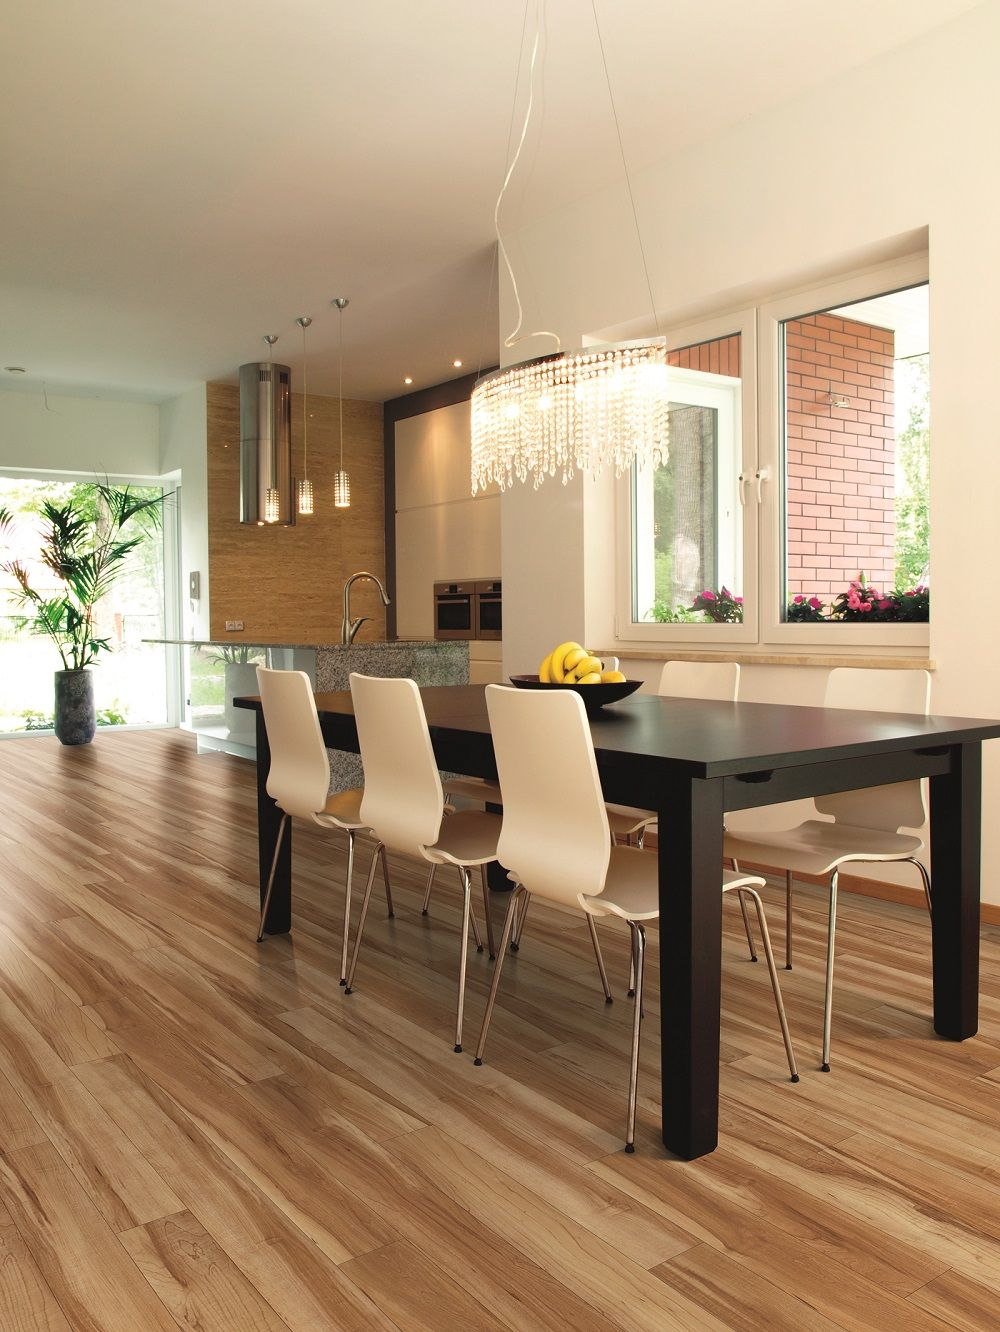 The floor in this stunning dining area is actually vinyl luxury vinyl plank in color red river hickory from us floors and available at innovative flooring